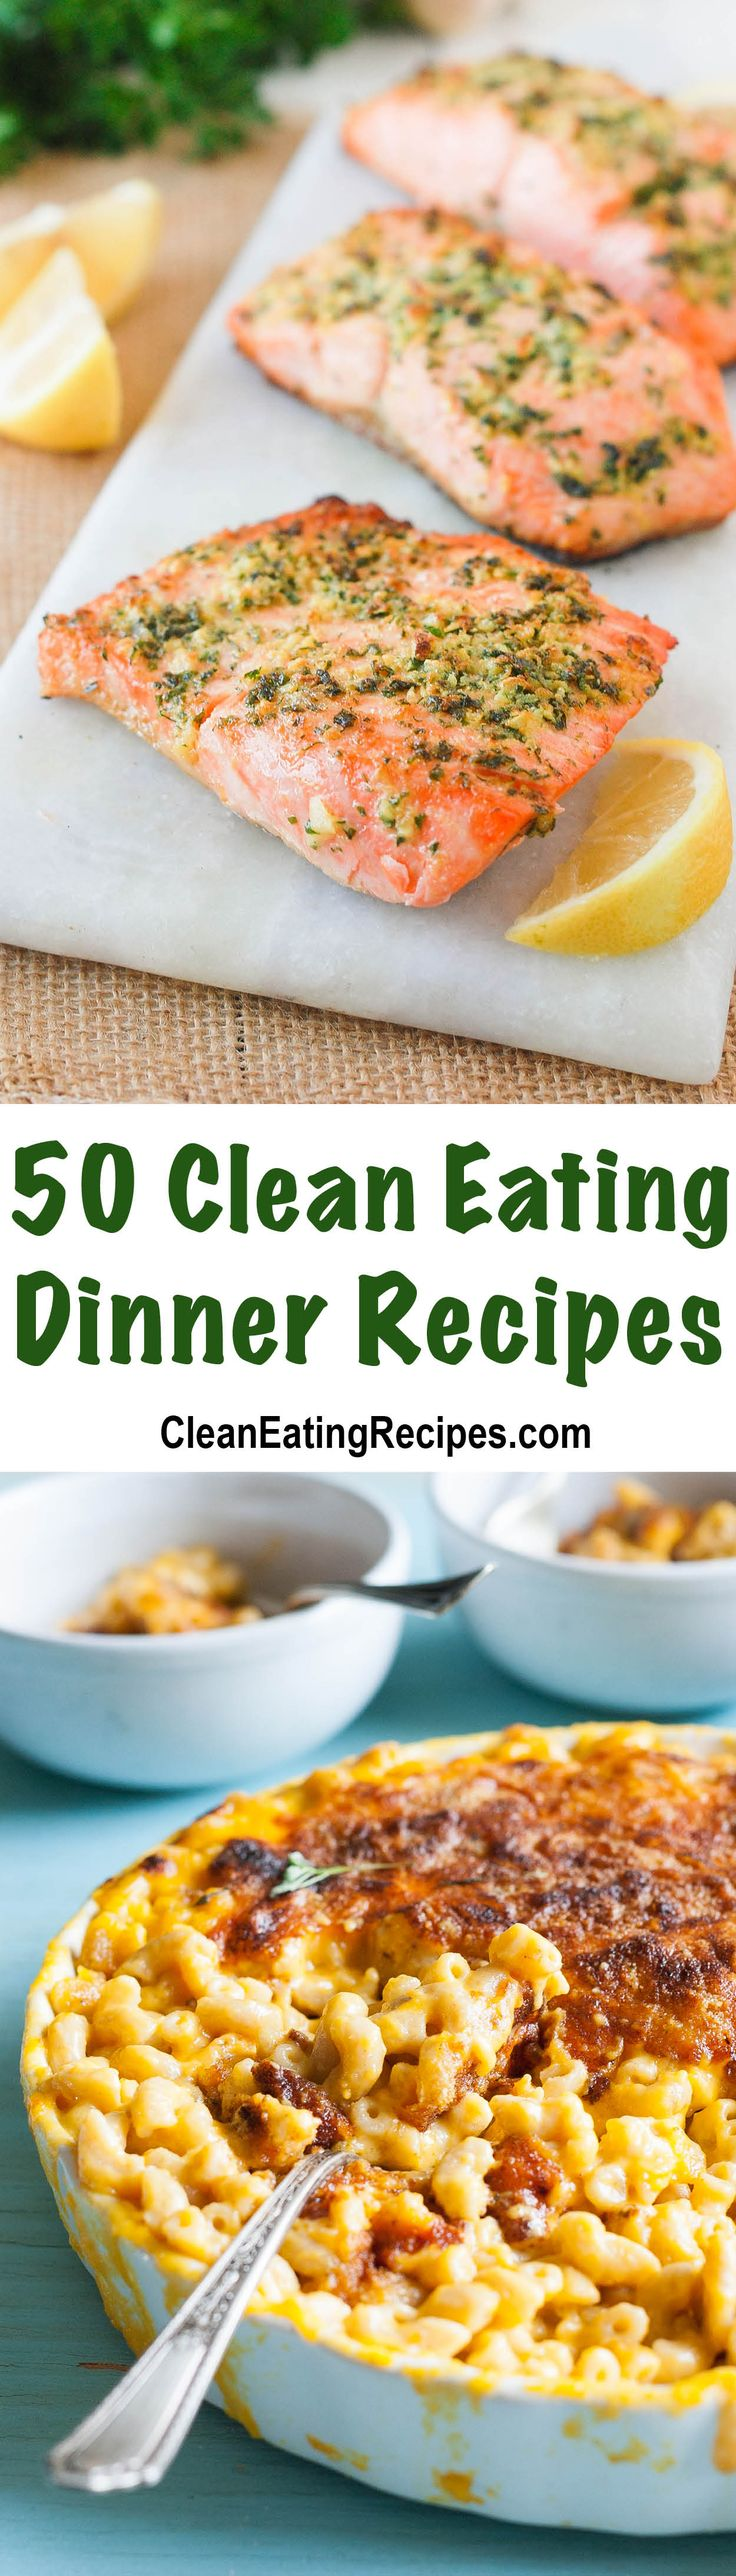 Click here to see recipes 26-37 38.Easy, Clean EatingHealthy Oven Baked Fajitas Recipe 39.Clean Eating Southwest Cobb Salad with Smokey Chili Lime Dressing Recipe  40.Clean Eating Coconut Crusted Chicken Tenders with Blackberry Sweet Chili Lime Dipping Sauce Recipe 41.Clean Eating Southwest Loaded Sweet Potato with Tomatillo Crema Recipe 42.Clean EatingHerbed Chicken & Mushroom Tetrazzini …